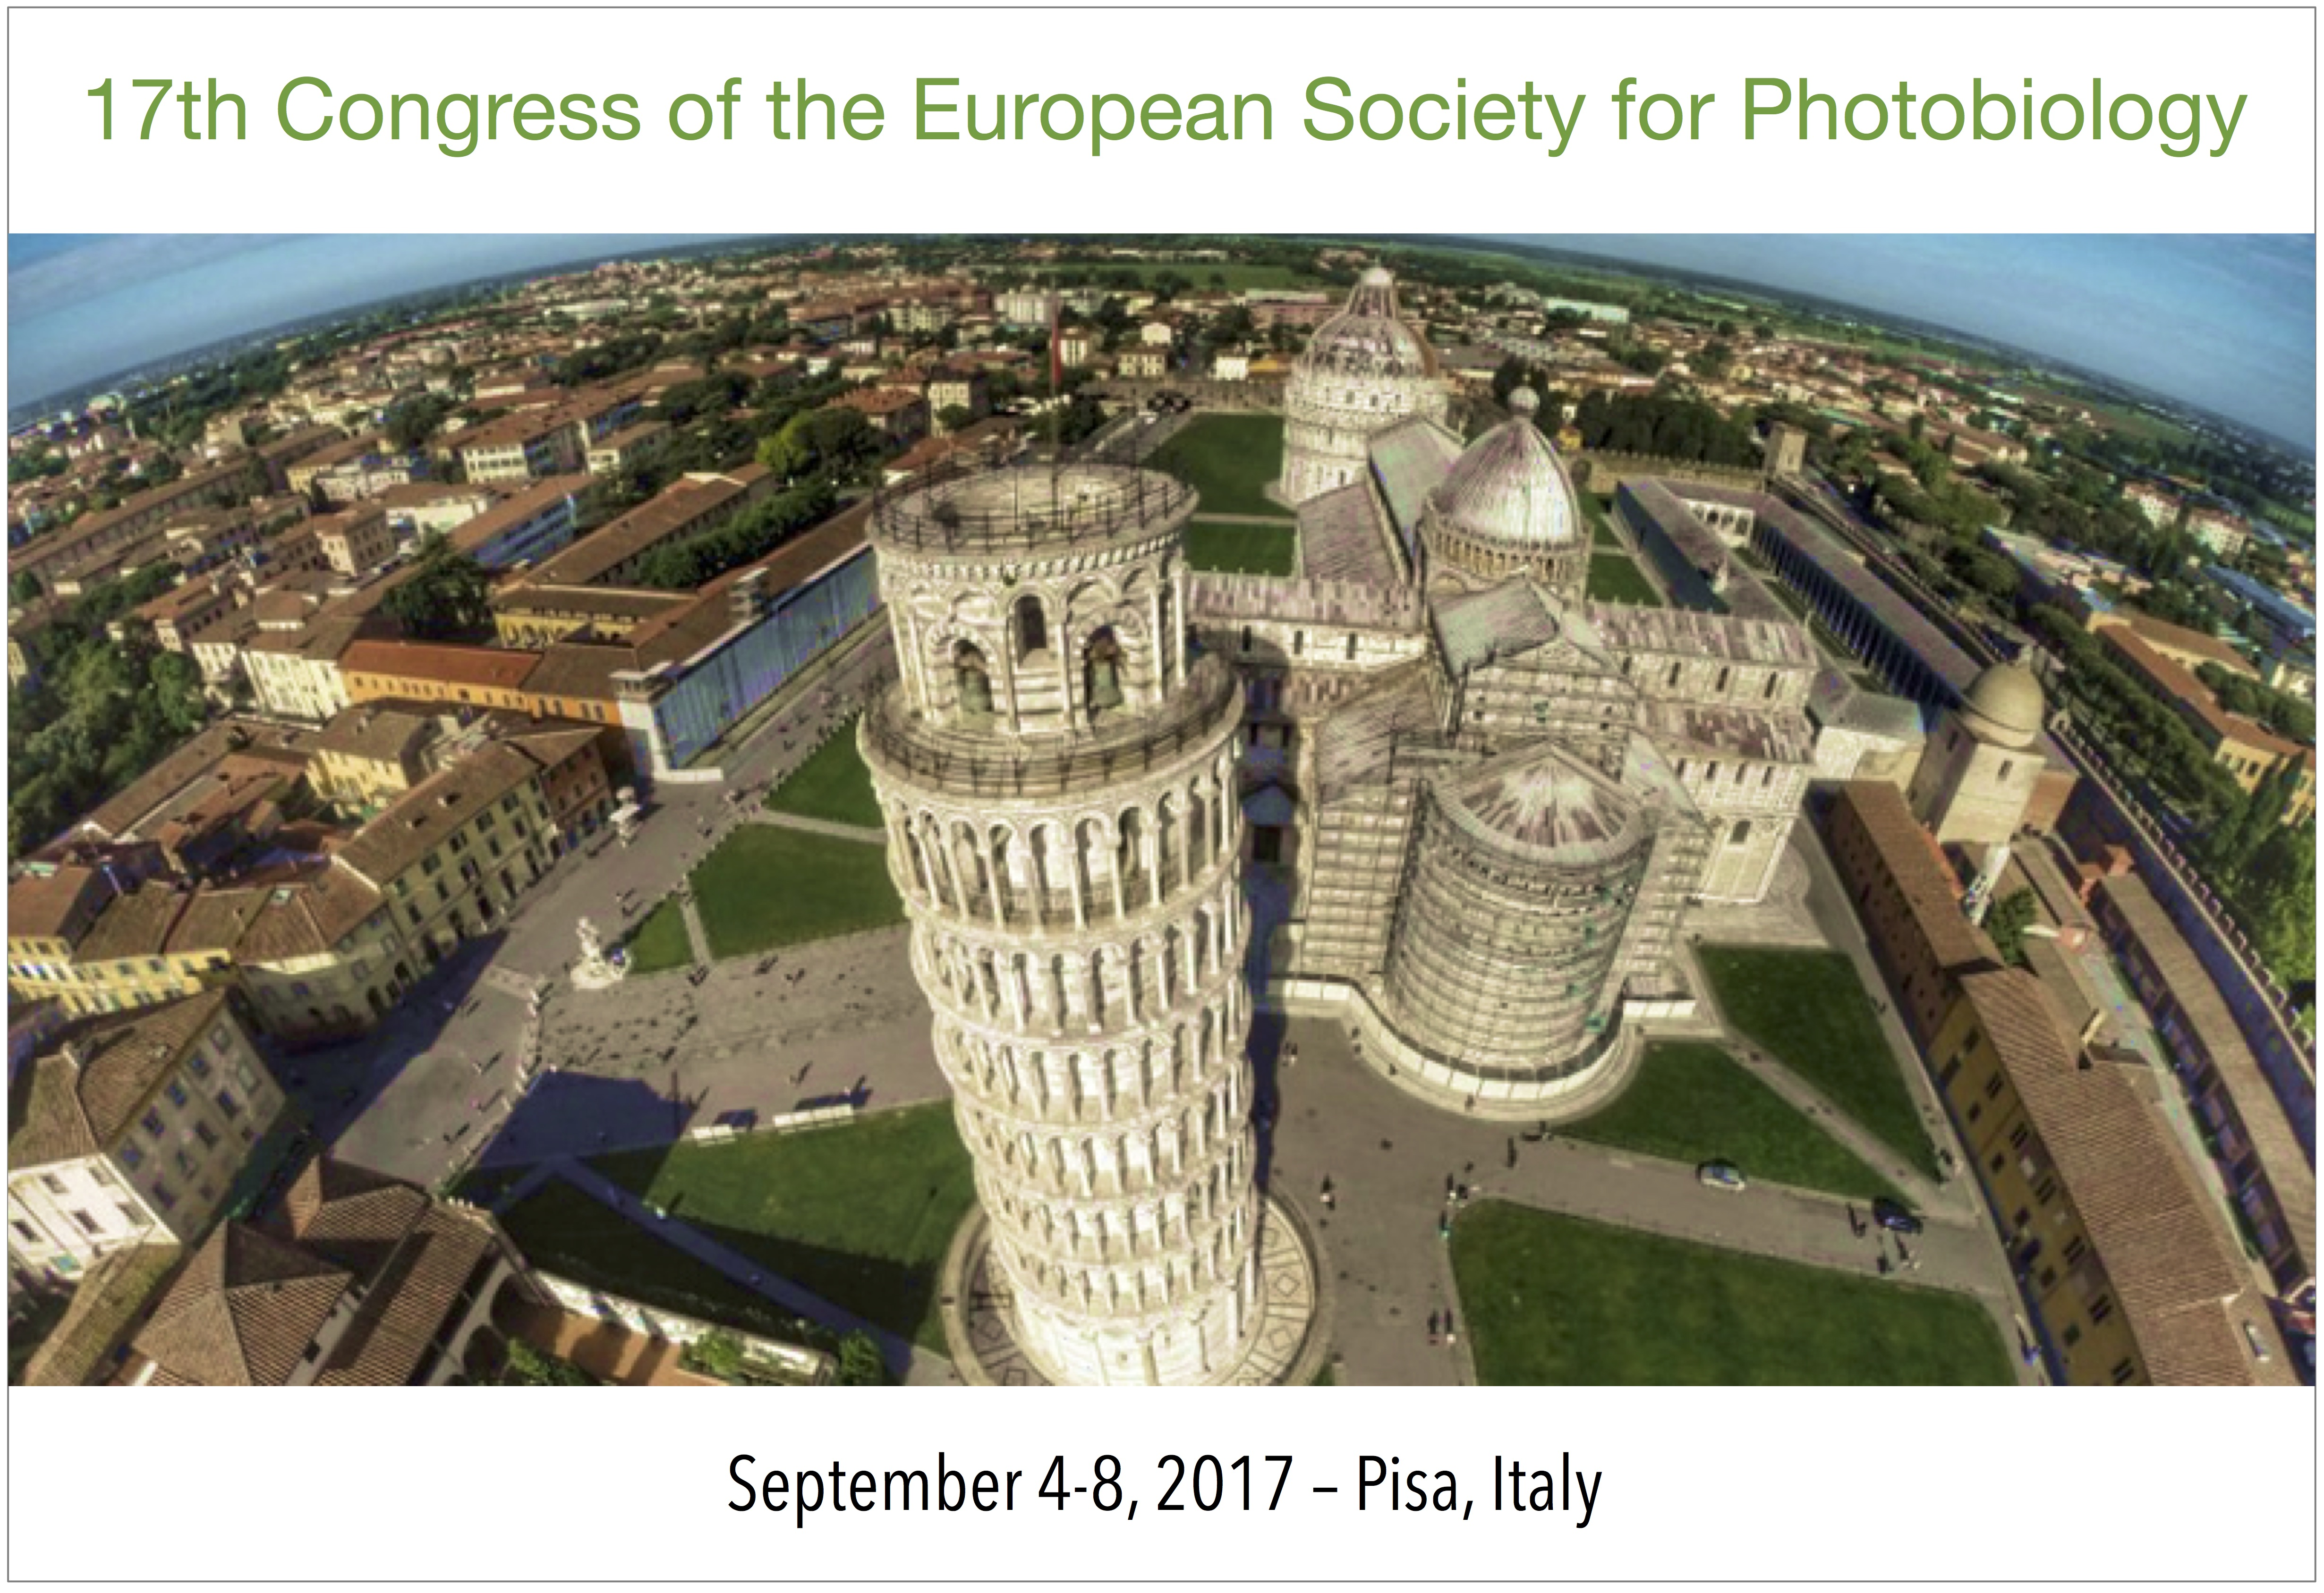 17th Congress of the European Society for Photobiology